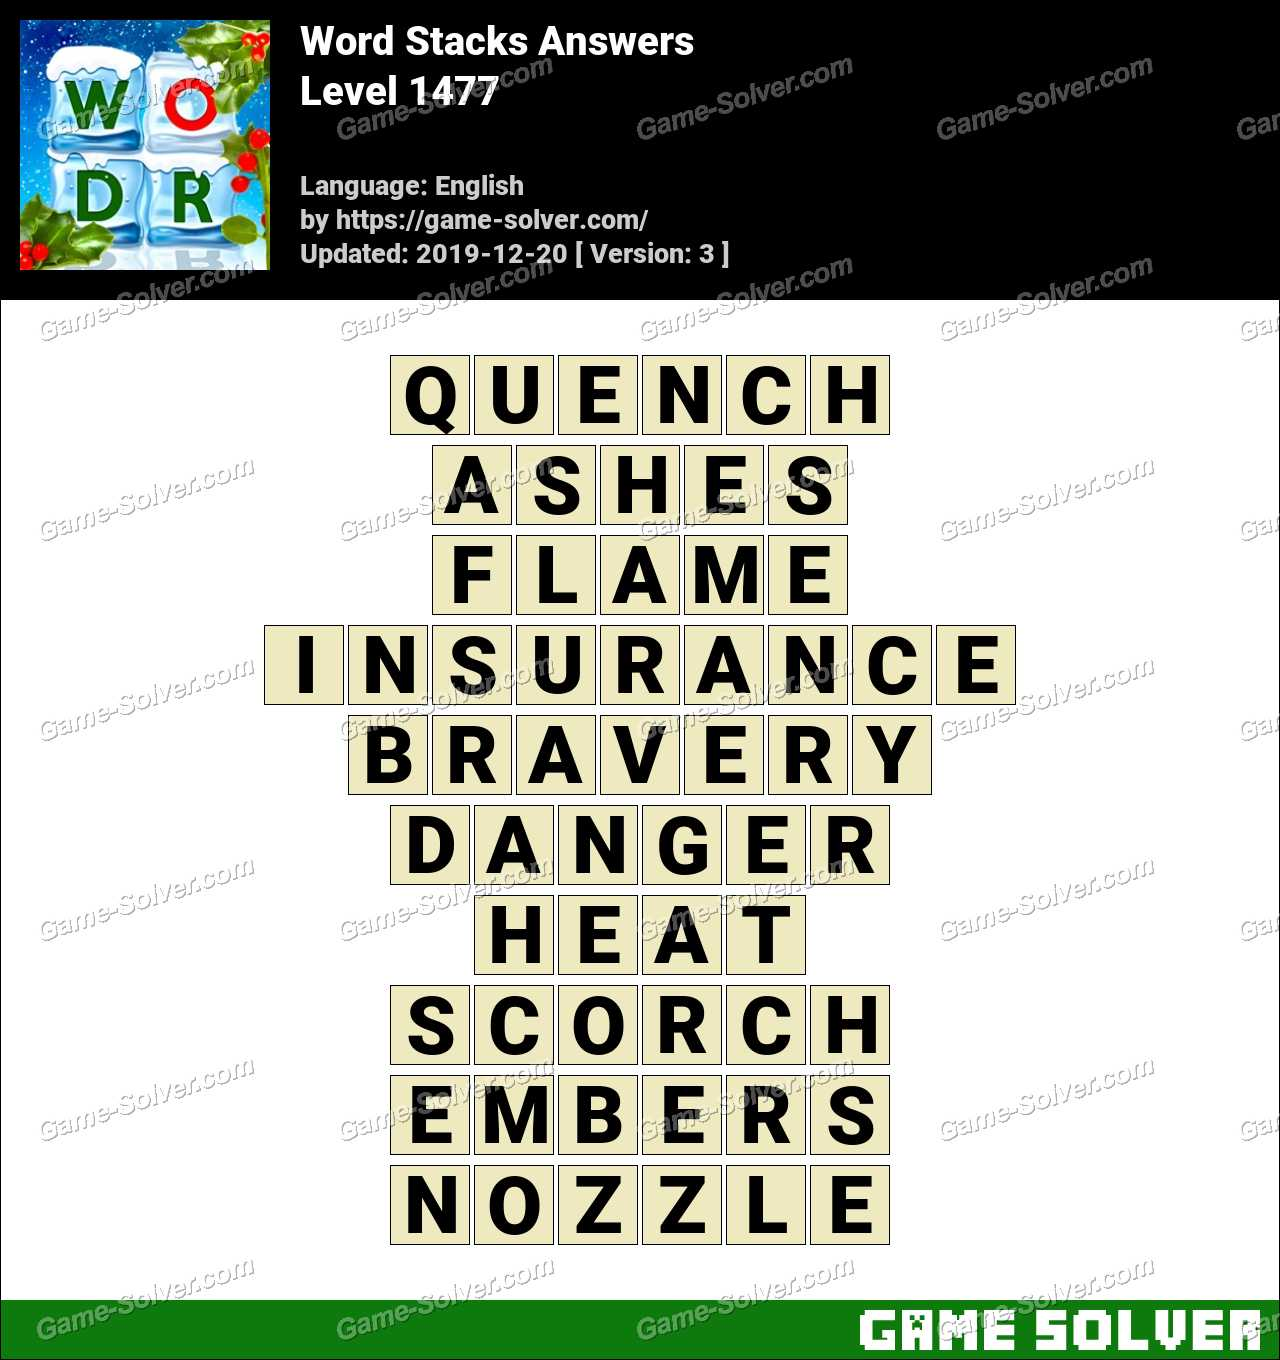 Word Stacks Level 1477 Answers